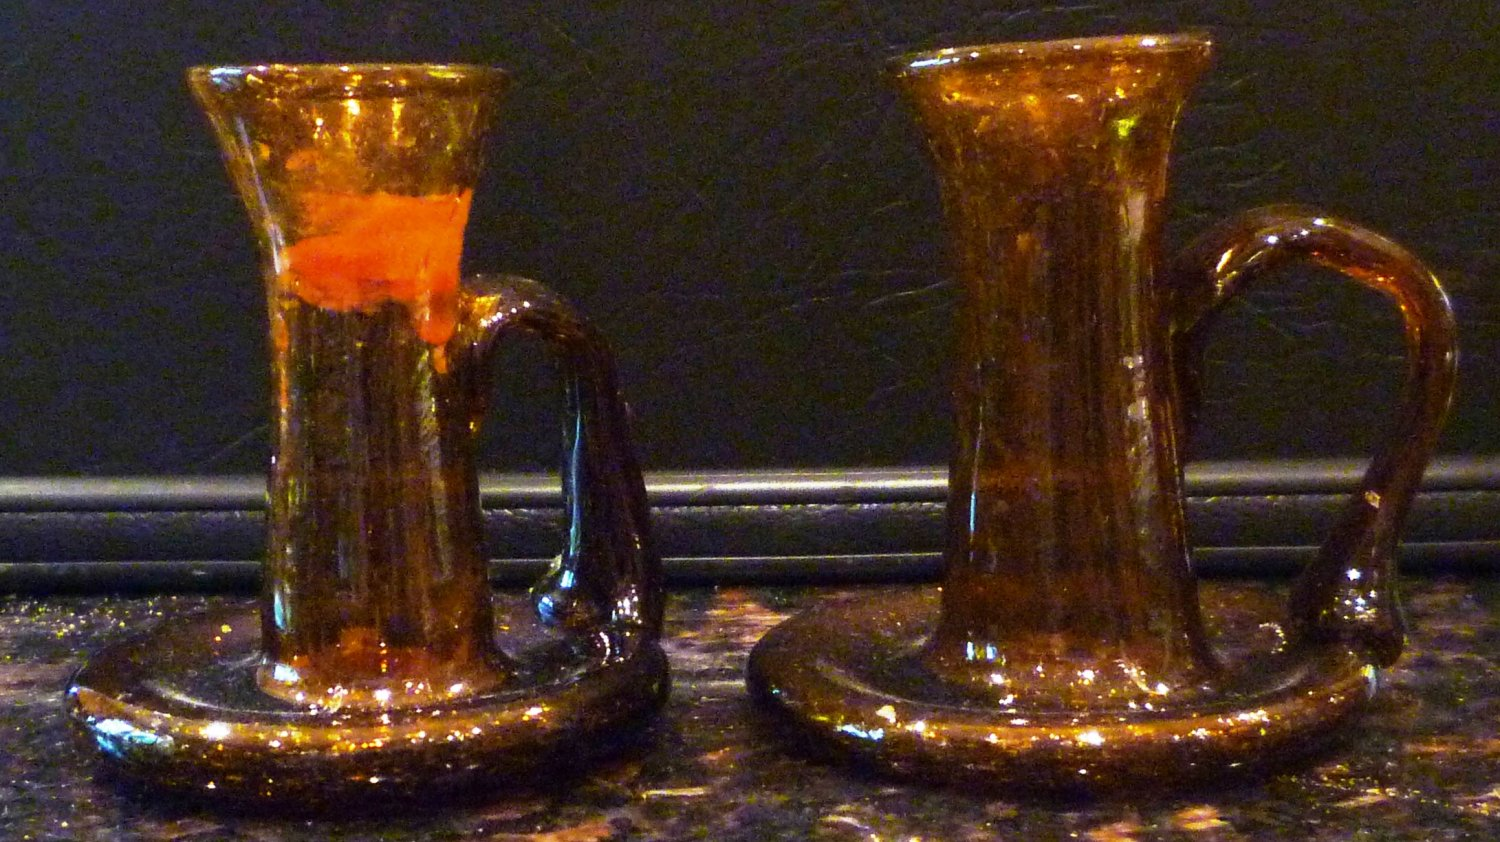 VINTAGE HANDBLOWN AMBER GLASS BUBBLE AND SPECKLE SET OF 2 CANDLEHOLDERS W/HANDLE